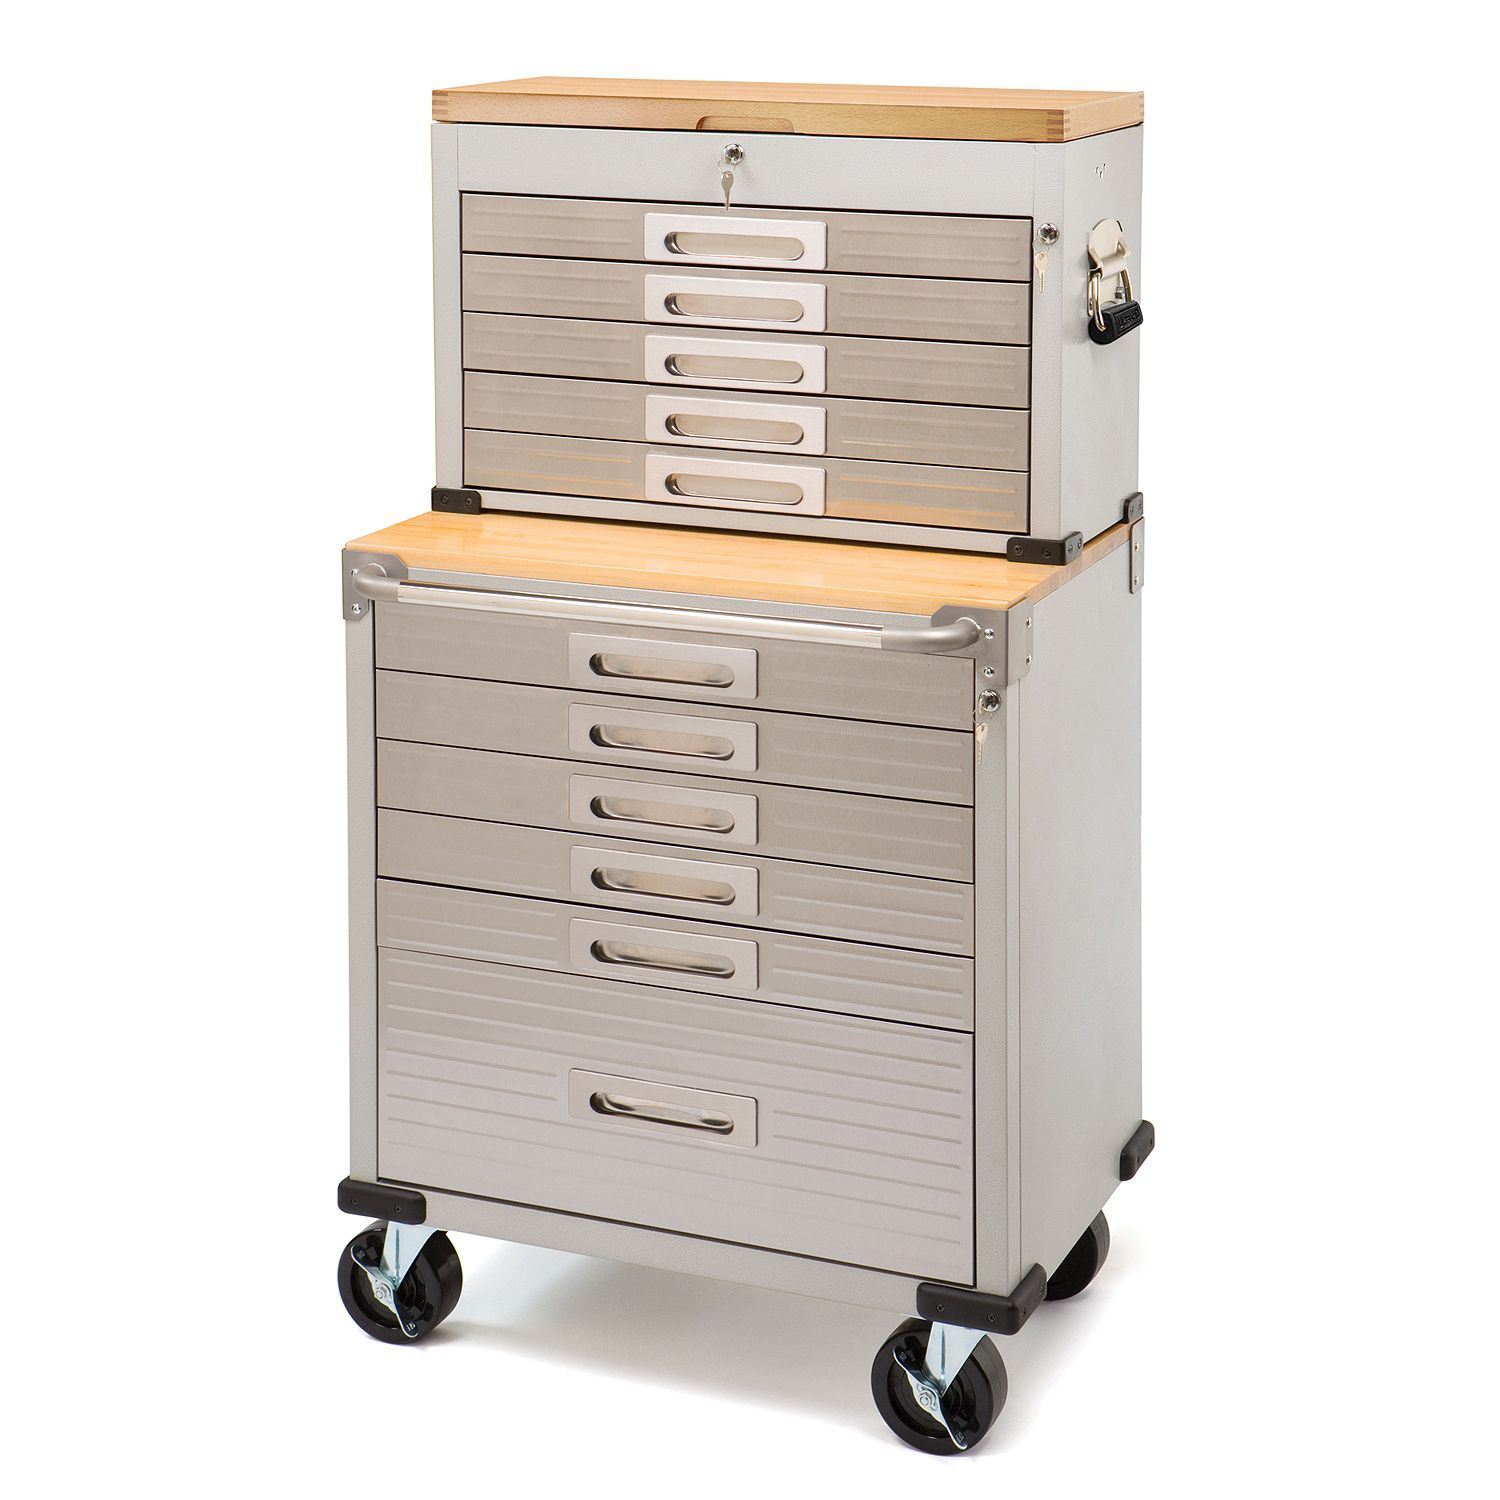 storage images garage best pegboard toolbox drawers stainless rolling steel workcenter onestopsavings seville classics on drawer cabinets workbench ultrahd pinterest